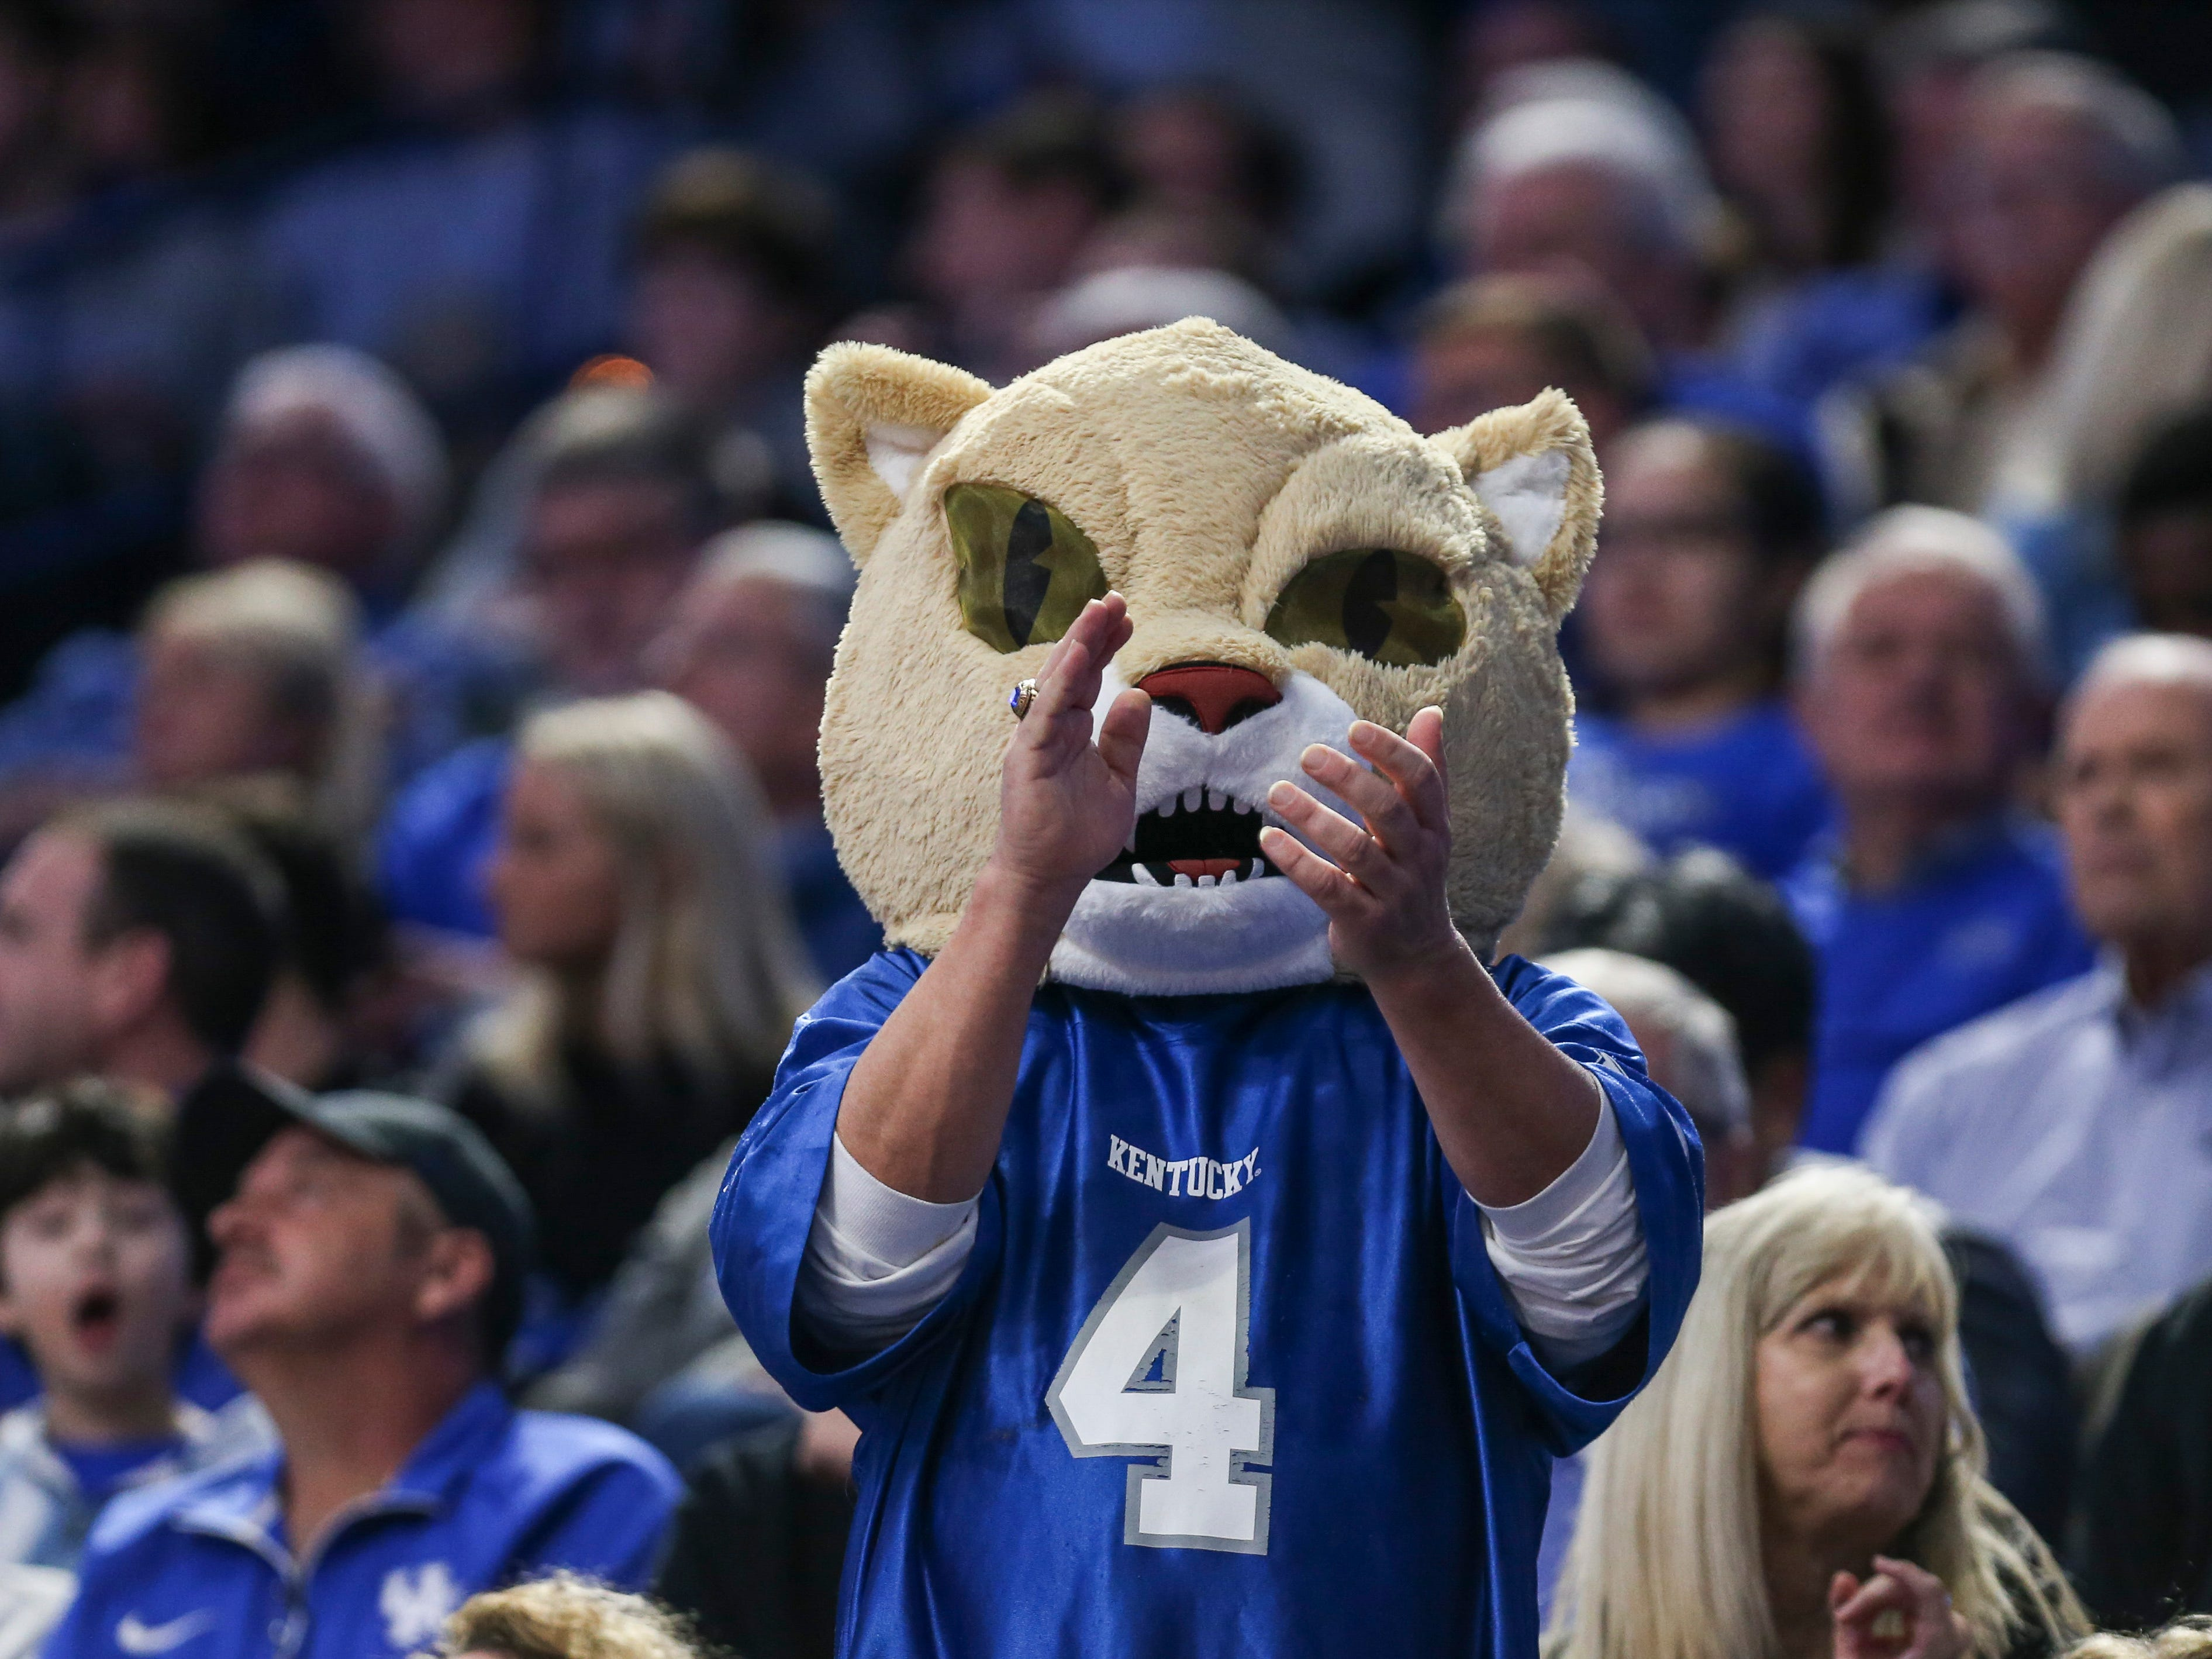 A Kentucky fan wore a Wildcat head while cheering during the South Carolina game. Feb. 5, 2019